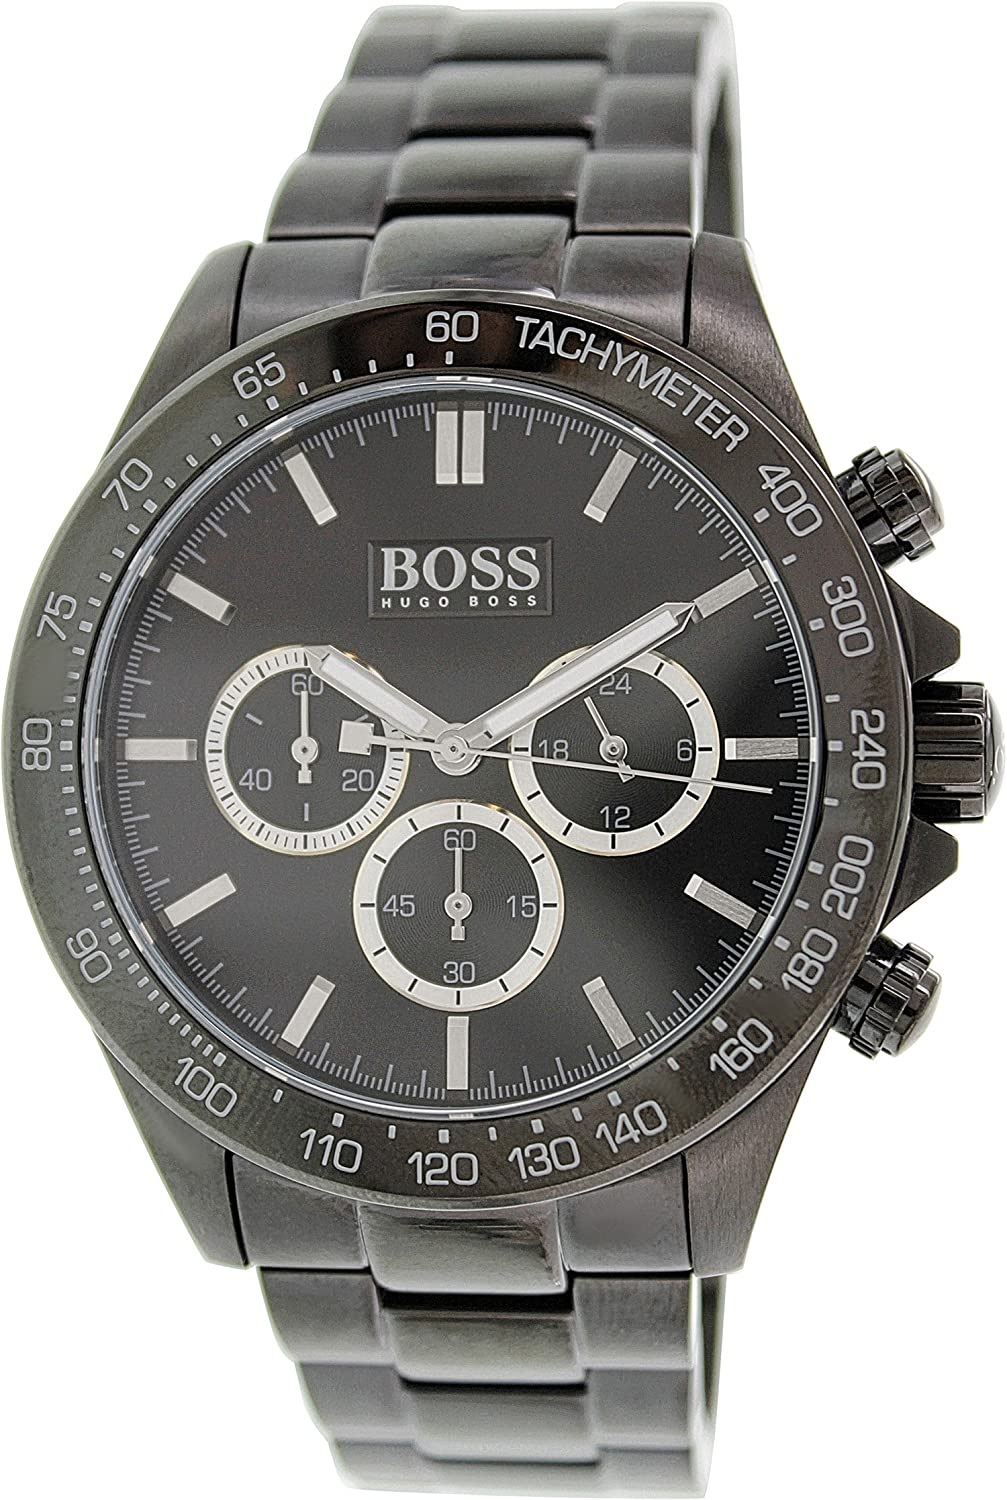 Hugo Boss Herren Chronograph Analog Dress Quartz Reloj 1512961